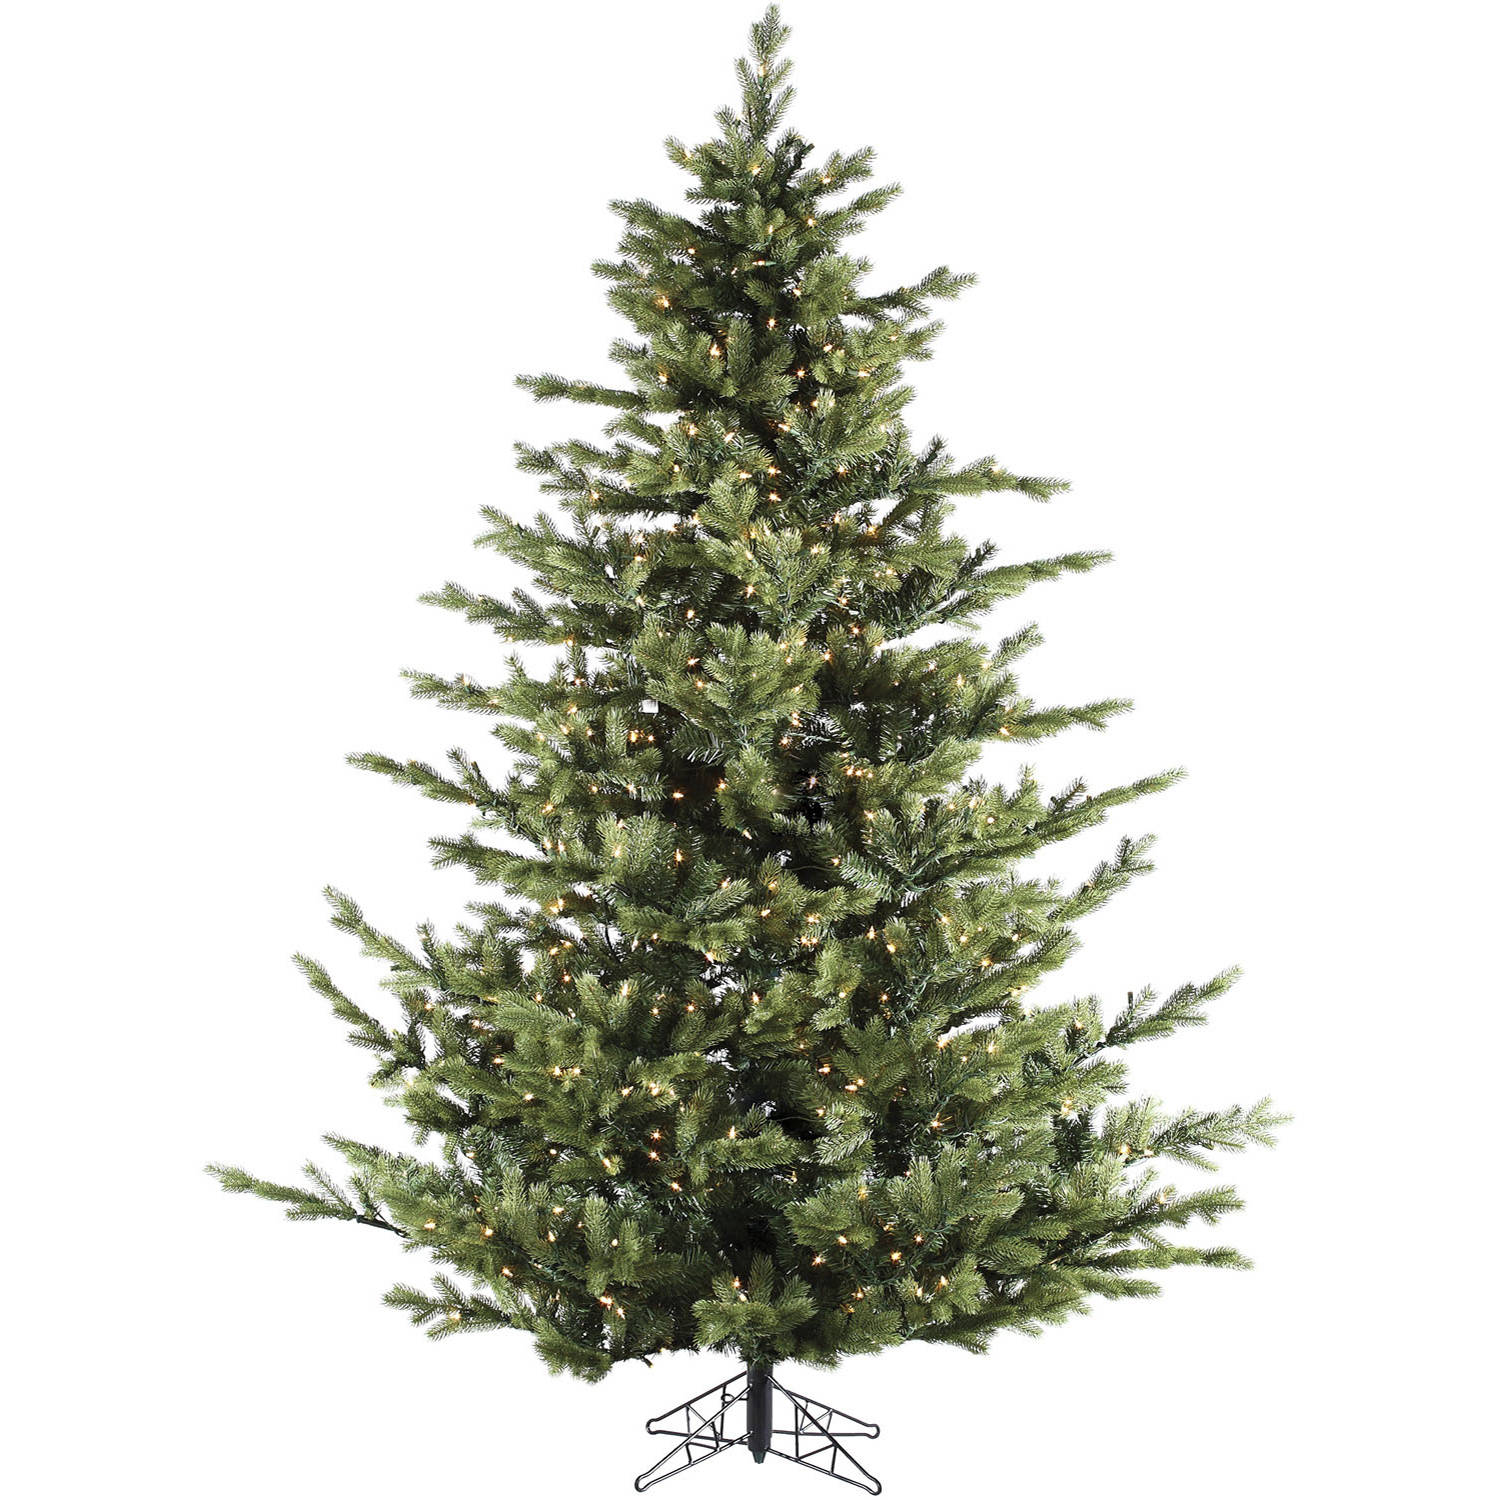 Fraser Hill Farm Pre-Lit 7.5' Foxtail Pine Artificial Christmas Tree with Multi-Color LED String Lighting